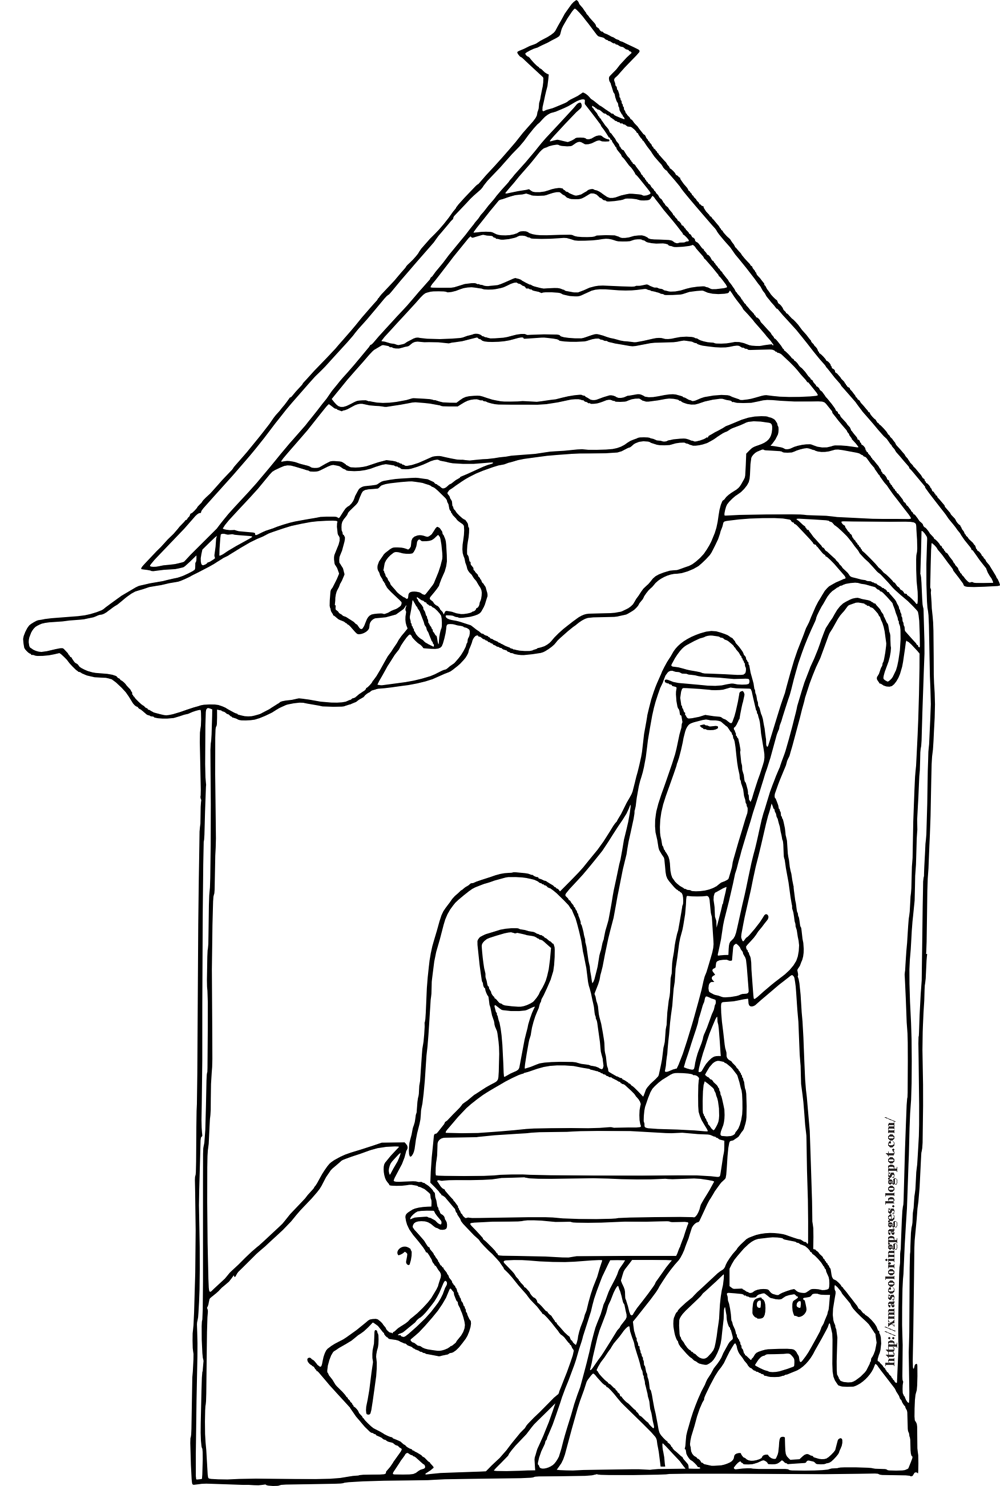 nativity coloring sheets | BABY JESUS COLORING PAGE NATIVITY ...